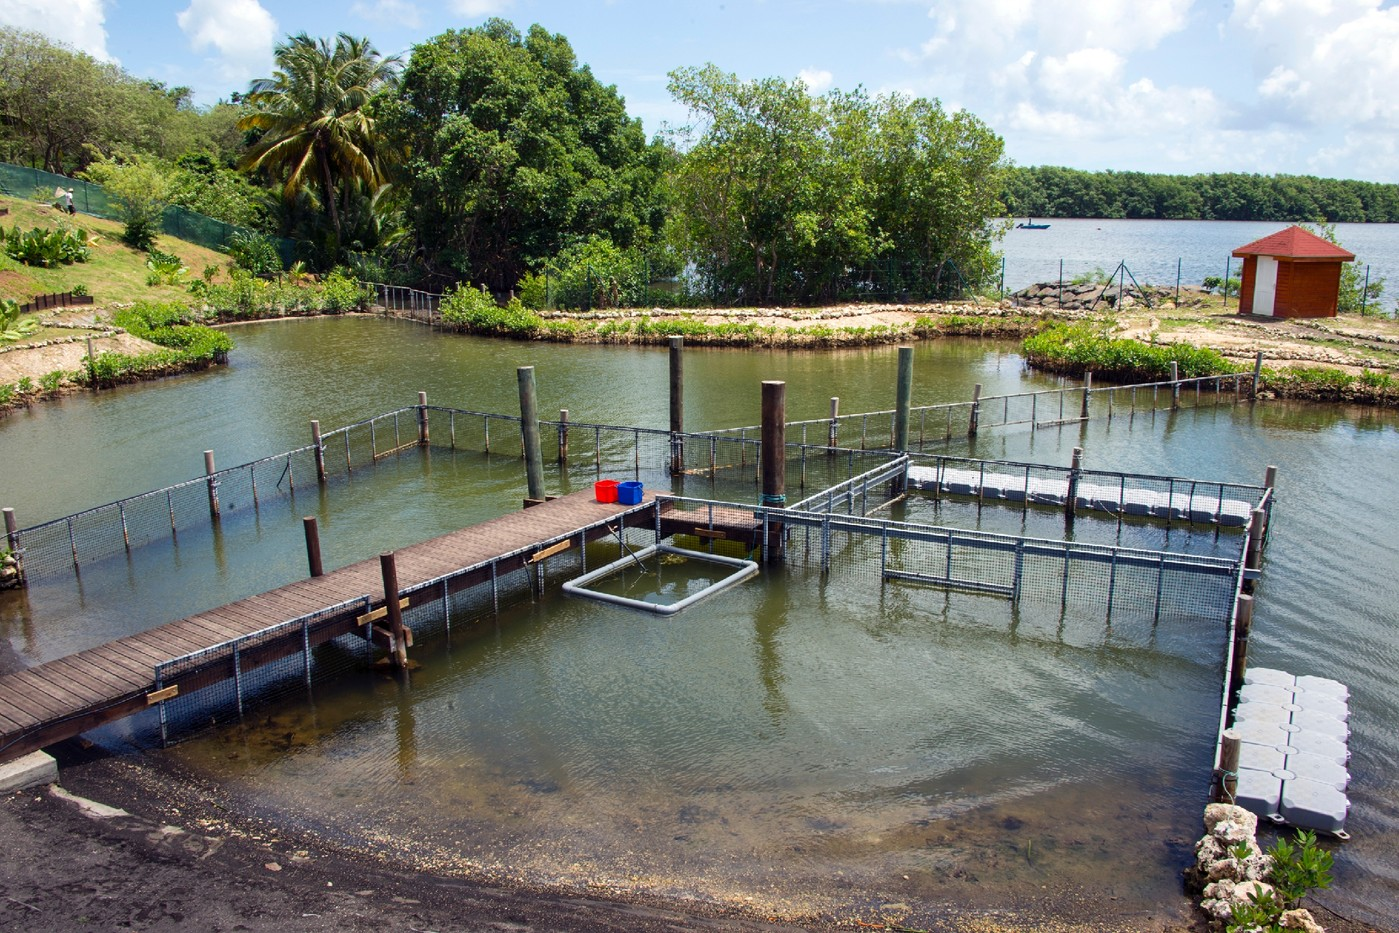 A picture taken on 10 August 2016 shows the accommodation centre of Blachon for manatees in Grand Cul-de-Sac Marin in Guadeloupe.